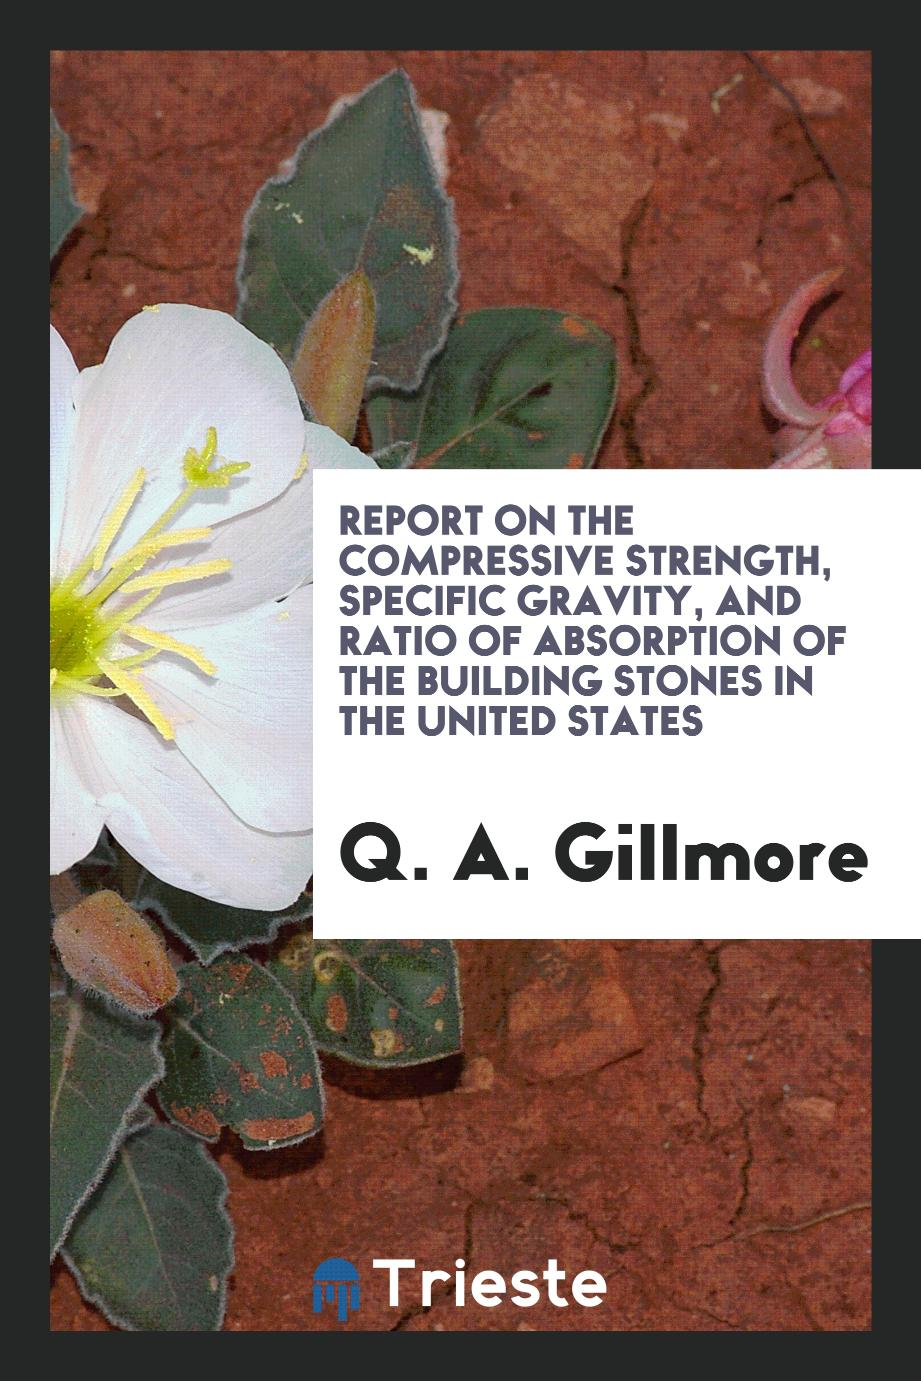 Report on the compressive strength, specific gravity, and ratio of absorption of the building stones in the United States